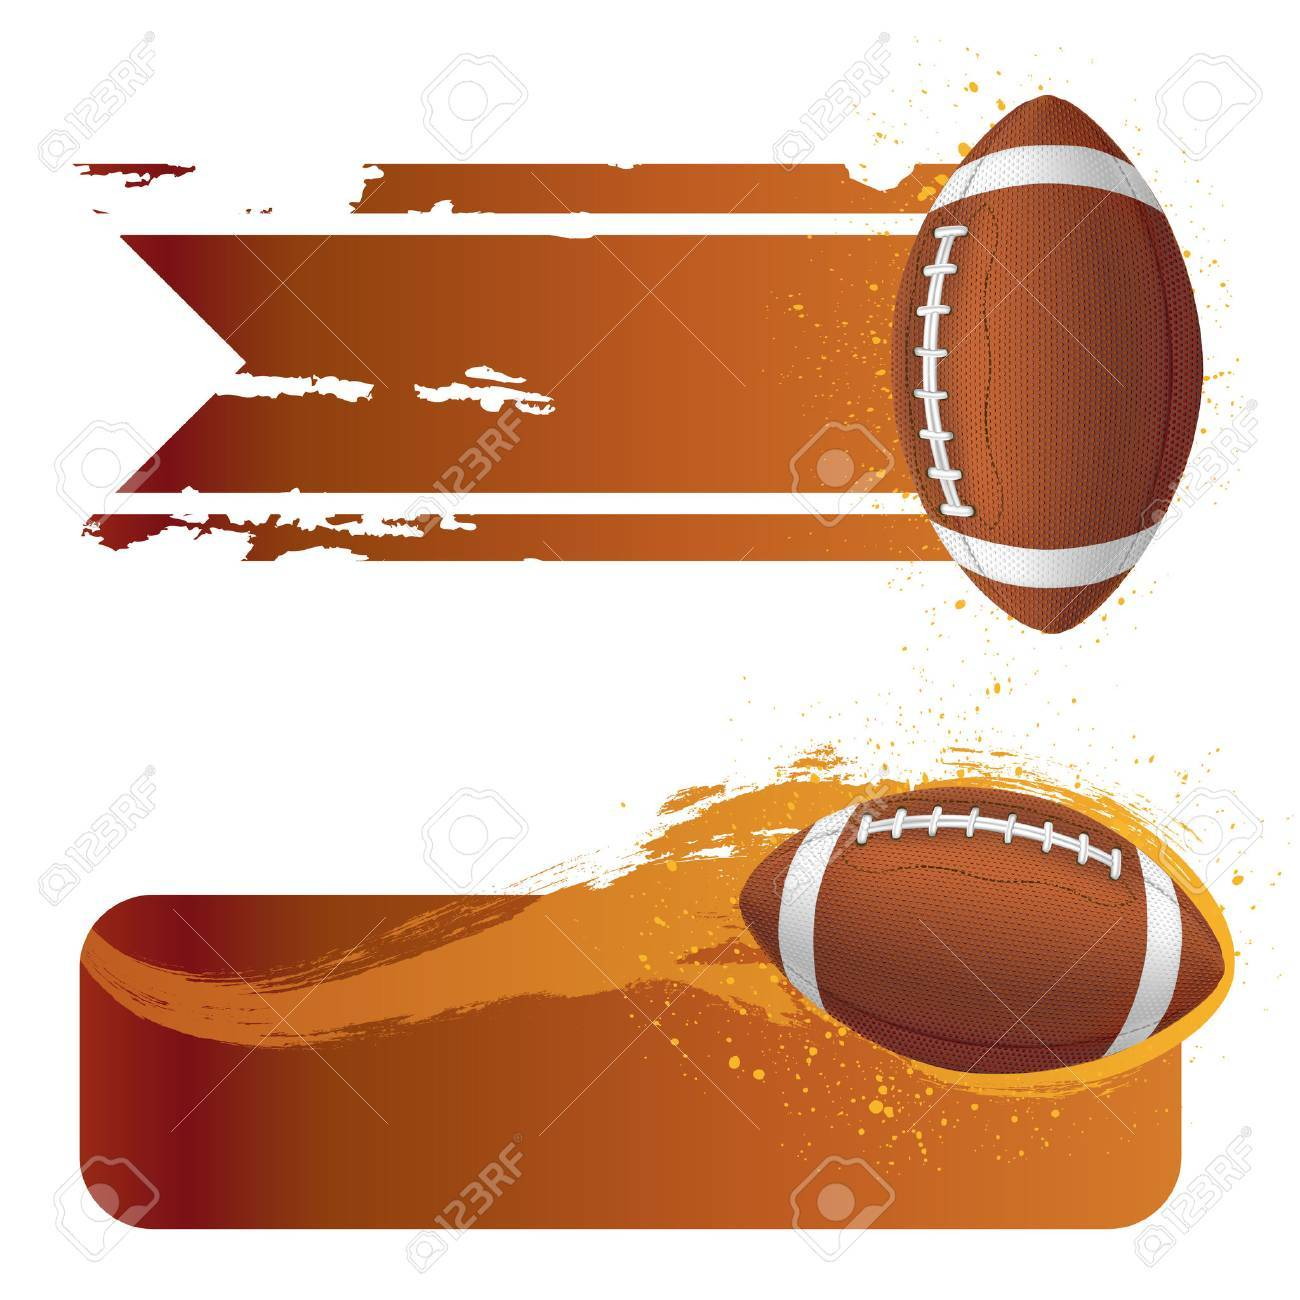 american football with grunge banner.